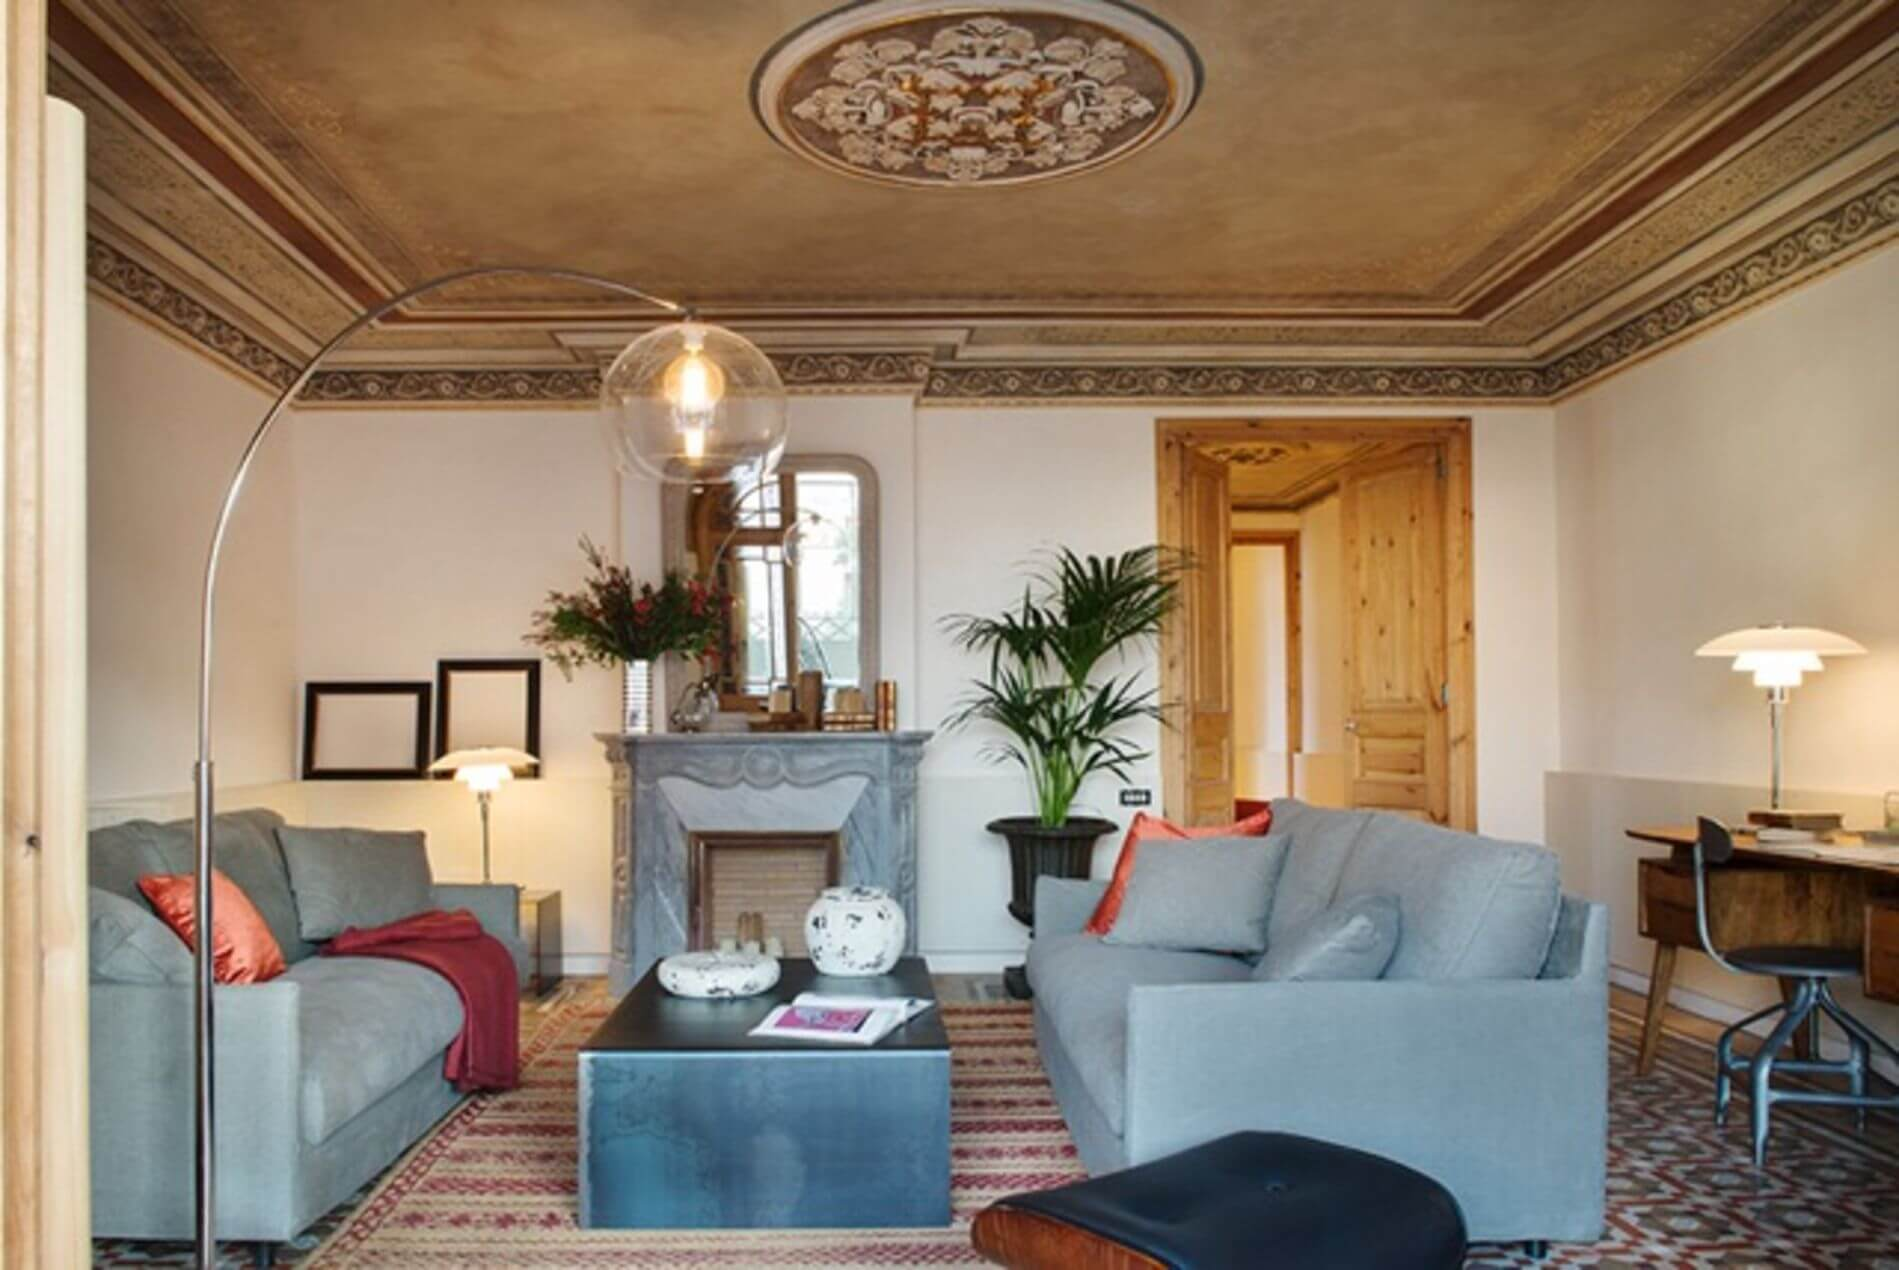 Furnished luxury apartment with 3 bedrooms ideal for families